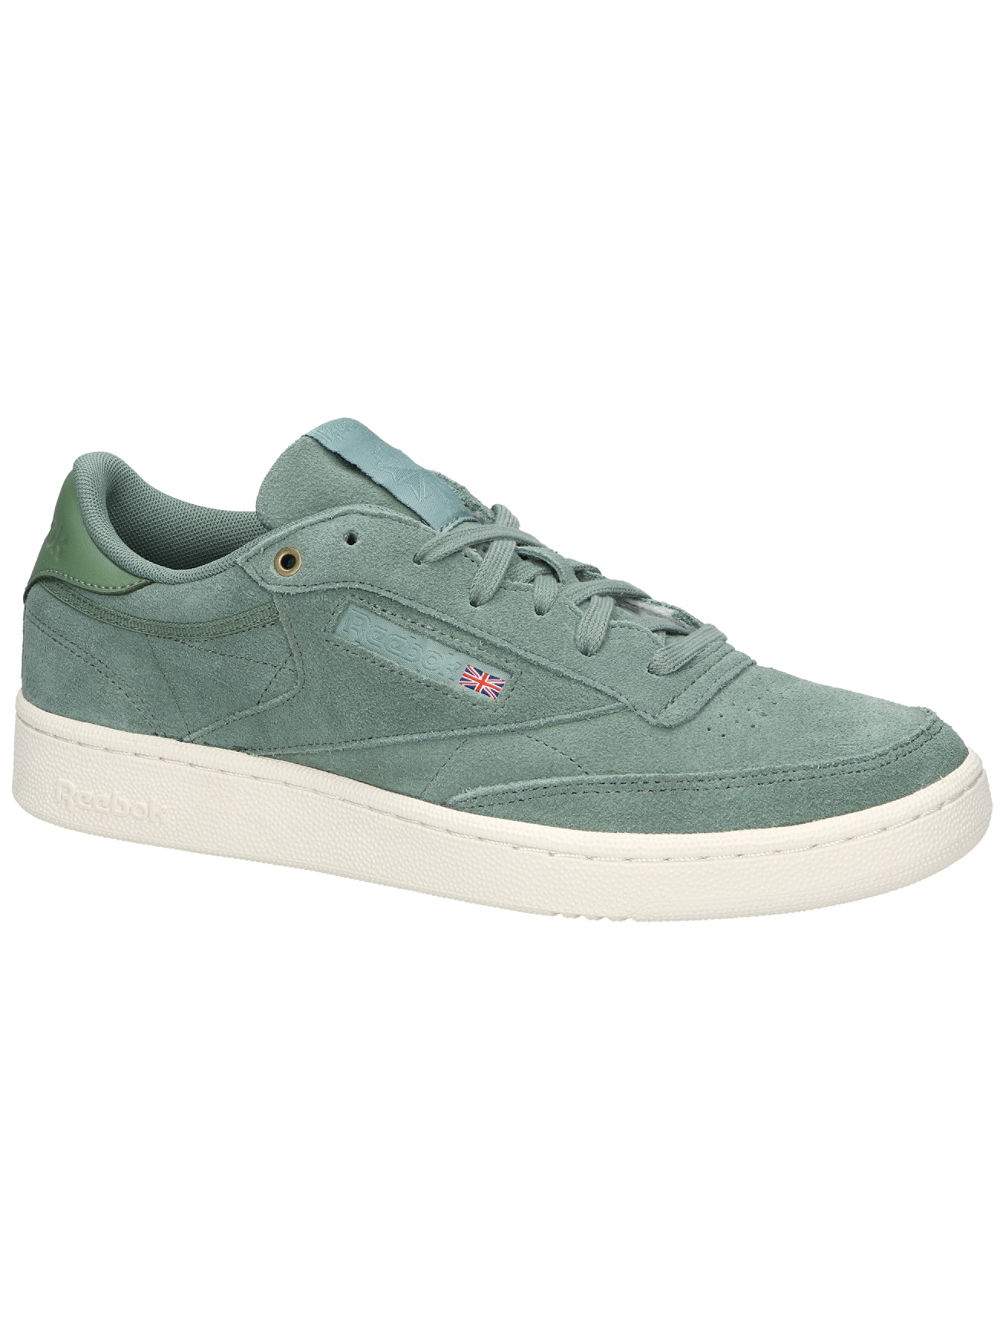 ceaf236cc36 Buy Reebok Club C85 Montana Cans Sneakers online at Blue Tomato